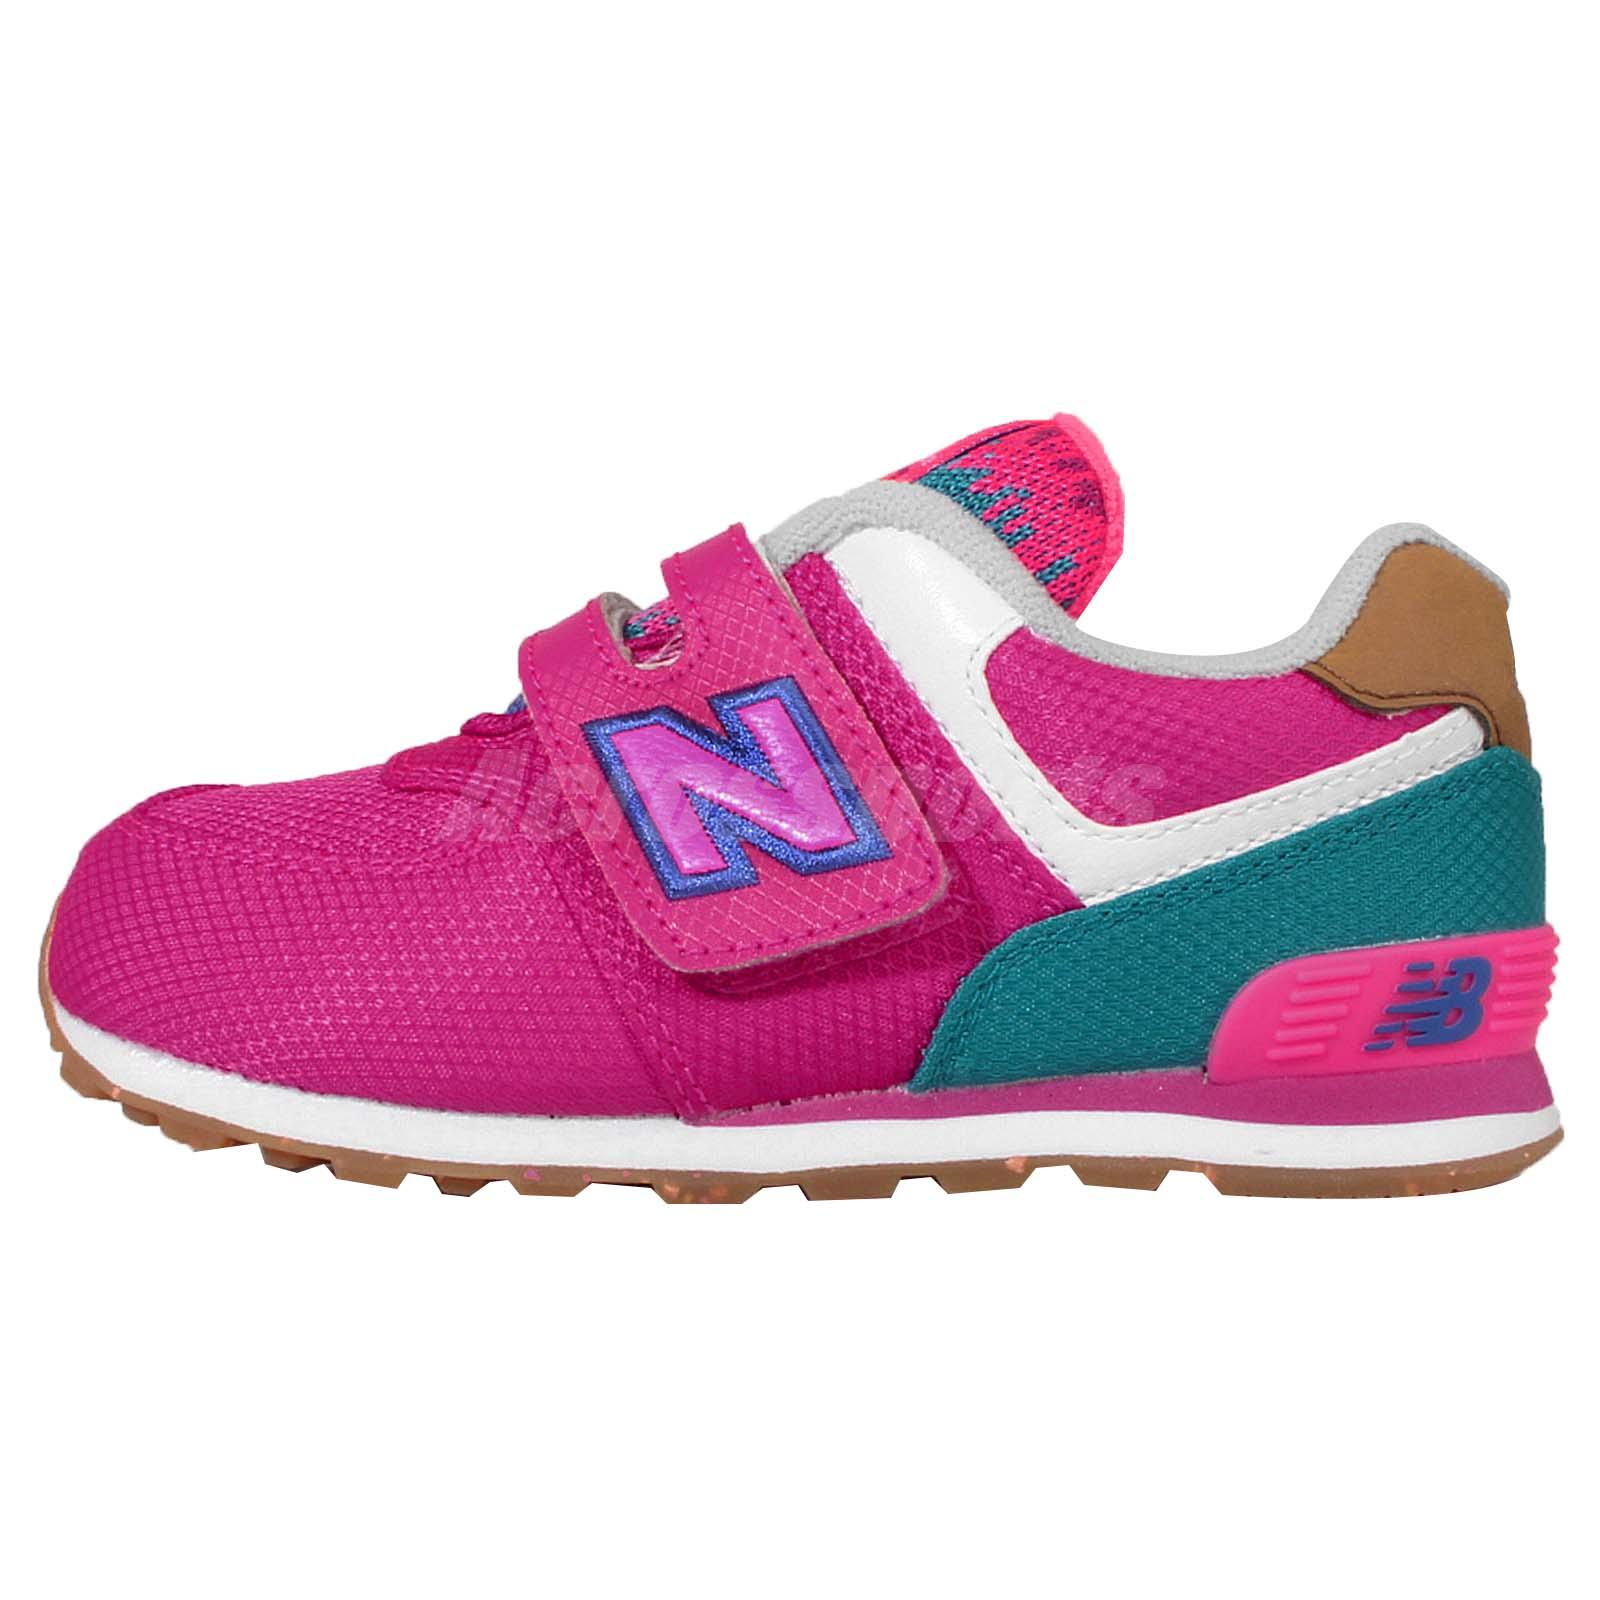 new balance kl501 youth running shoe